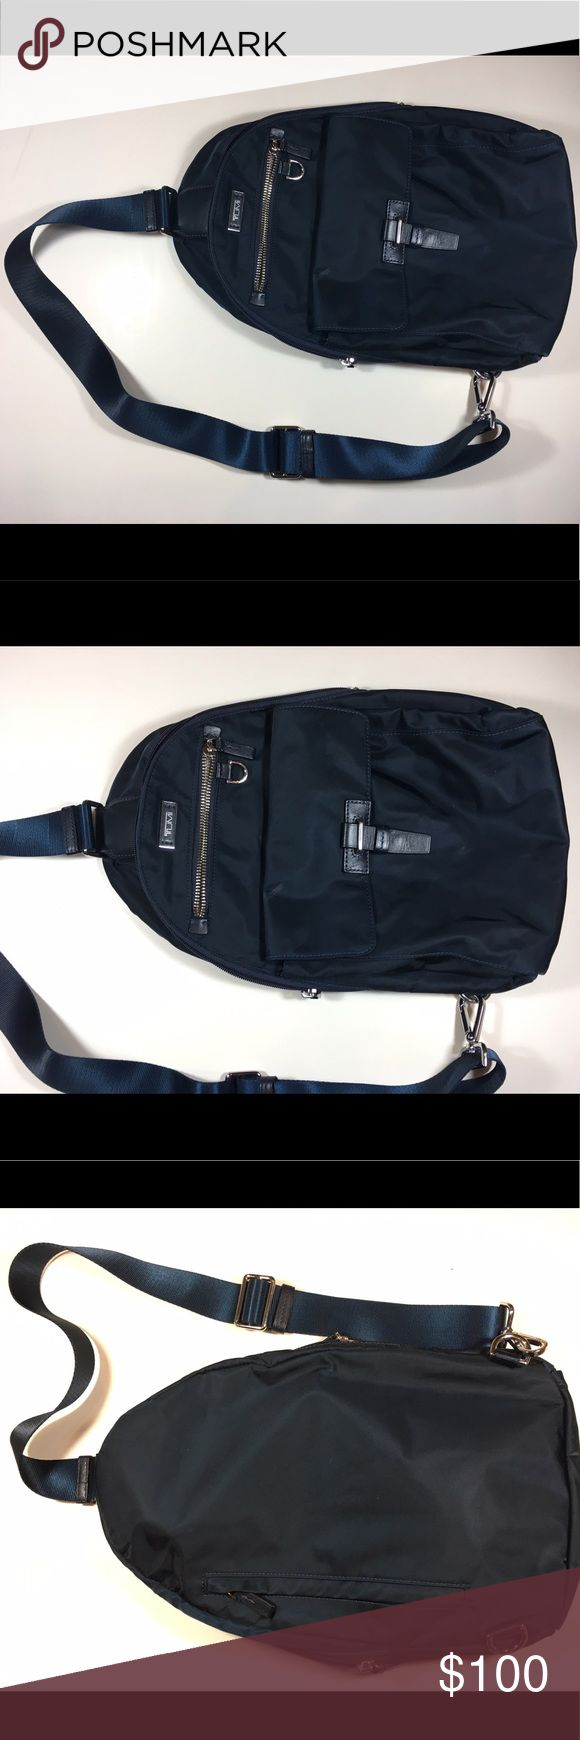 Tumi Navy Cross Body Backpack Brand- Tumi Color- Navy Style- Cross body backpack Condition- pre-owned, good condition, one mark on the inside, see last photo Tumi Bags Backpacks